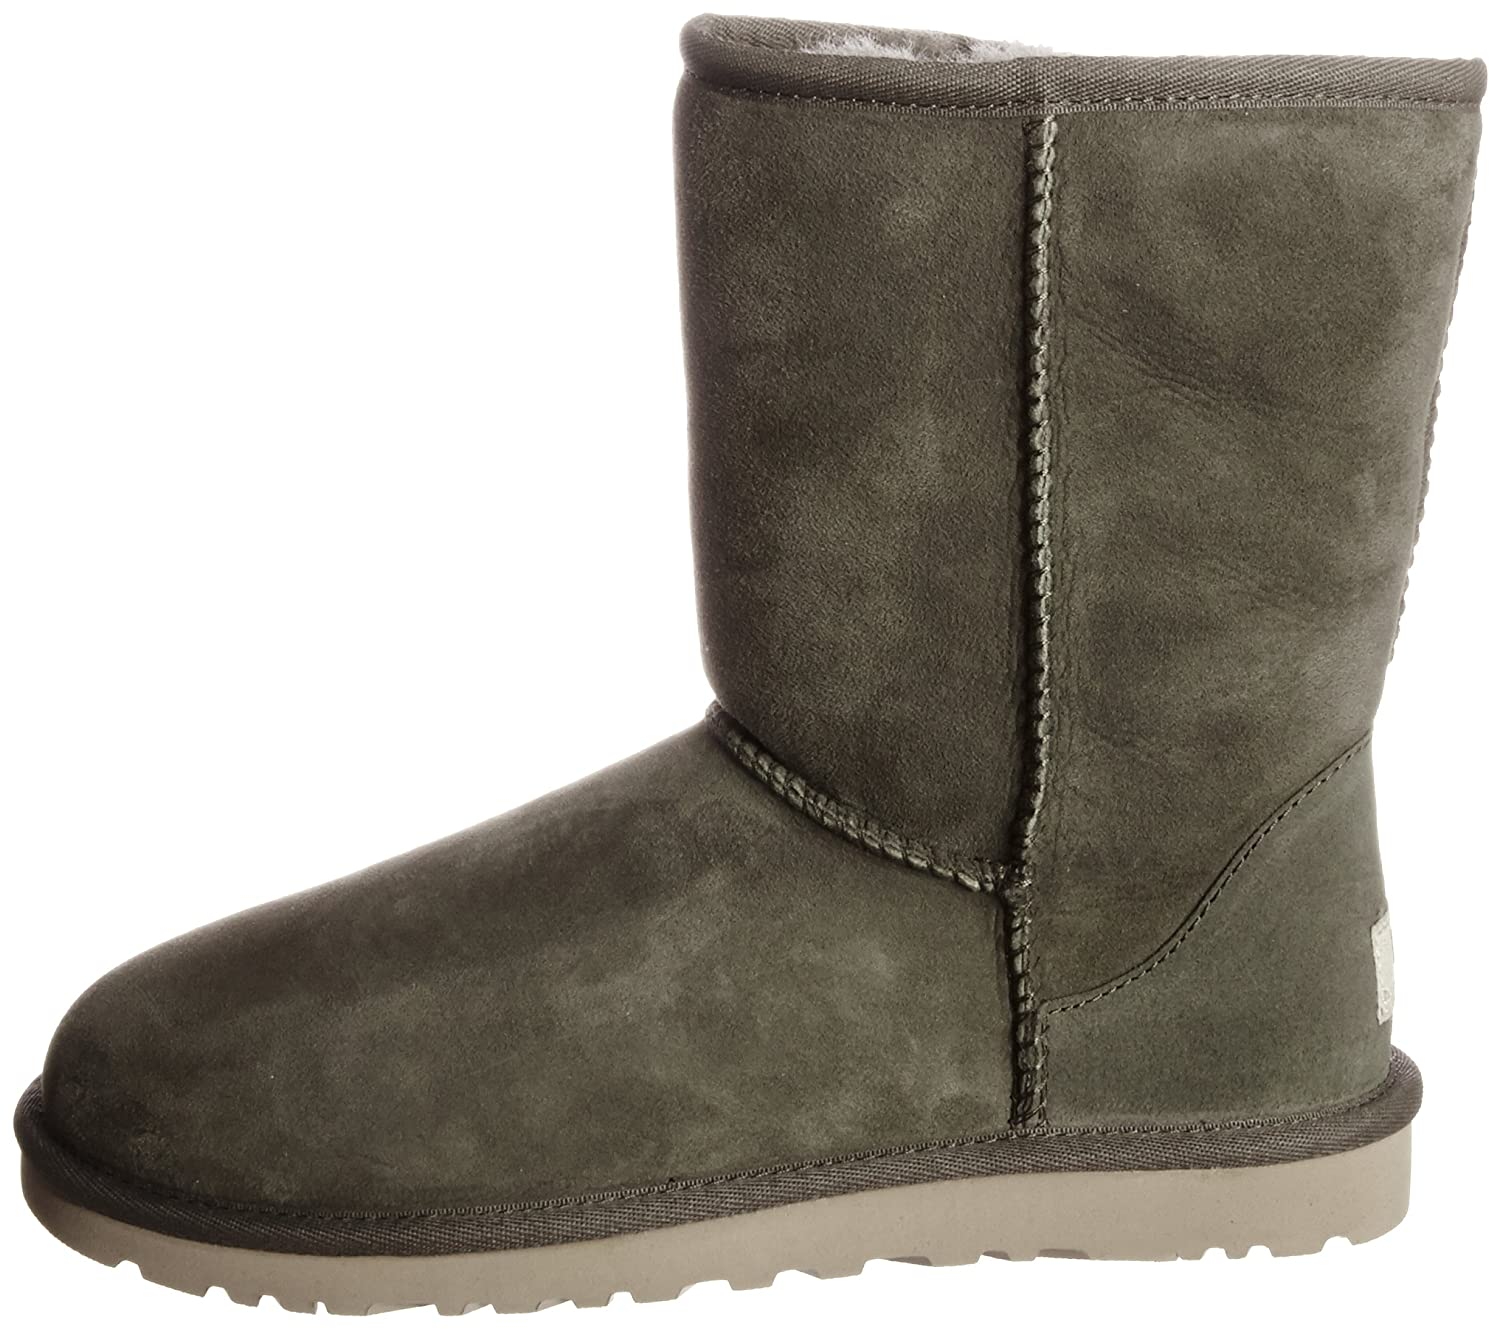 502560e385f UGG Women's W Classic Short Unlined Slip-on Boots Half Length